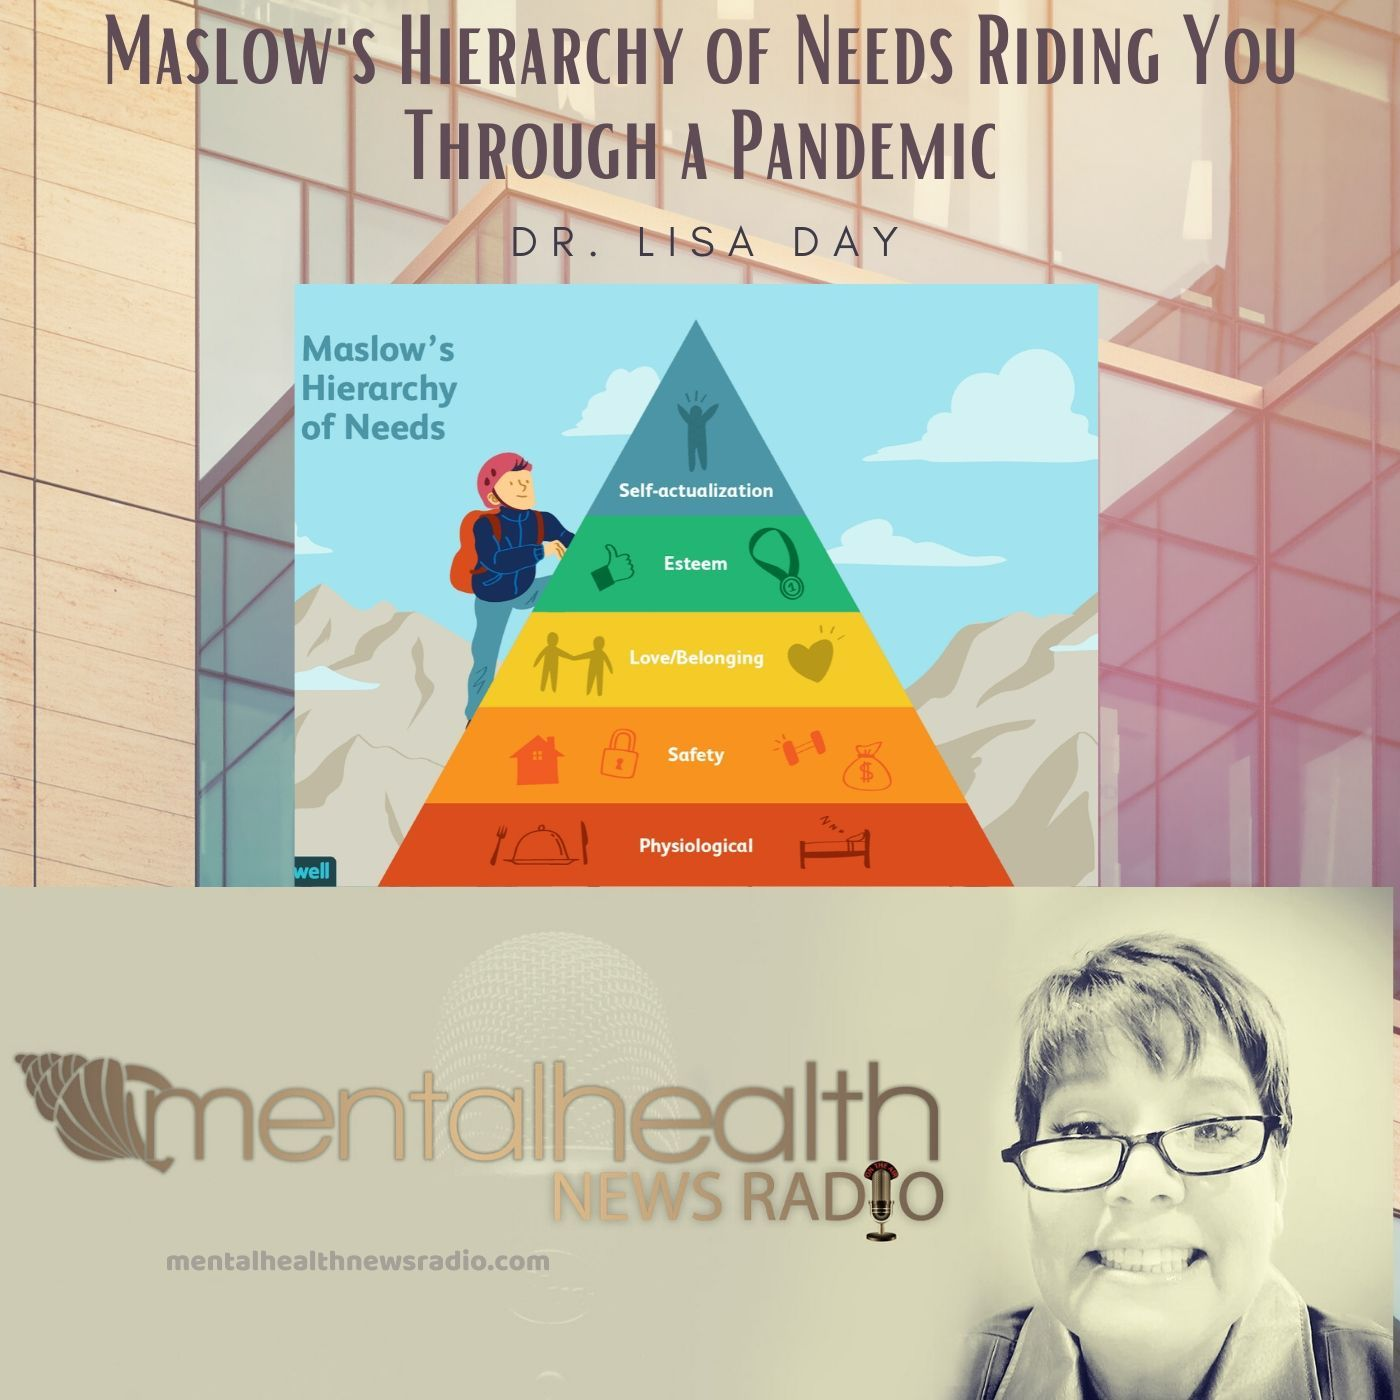 Mental Health News Radio - Maslow's Hierarchy of Needs Riding You Through a Pandemic